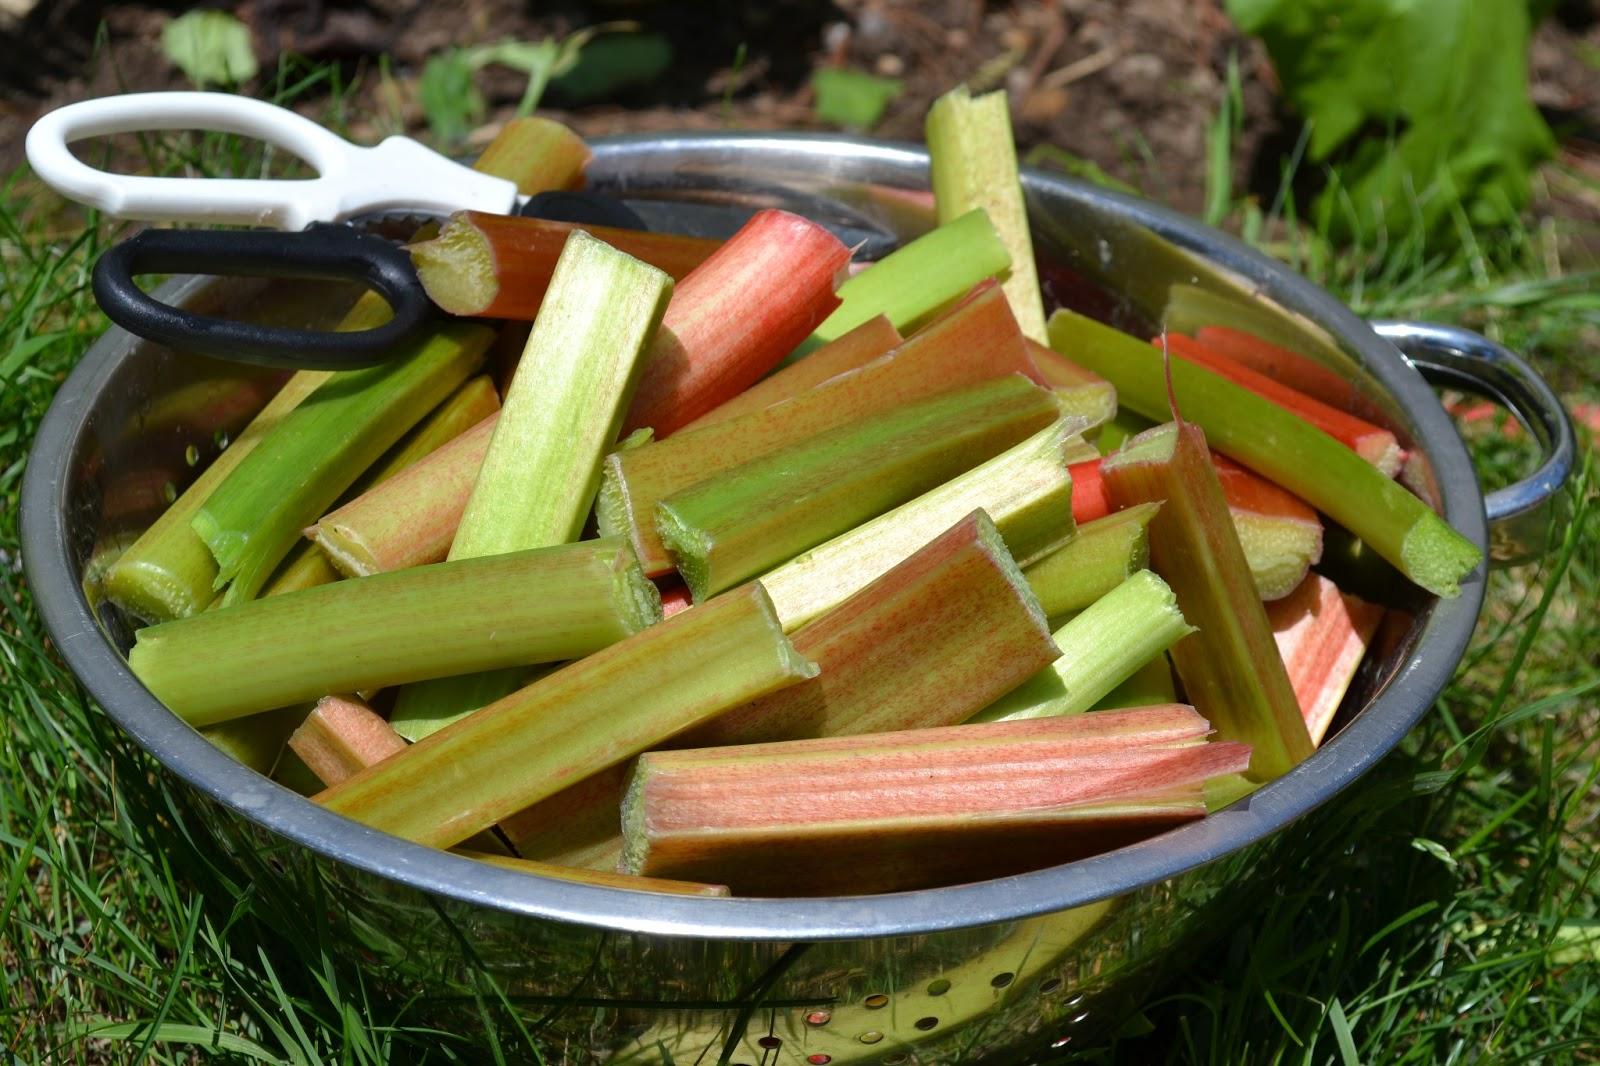 chopped up rhubarb stalks